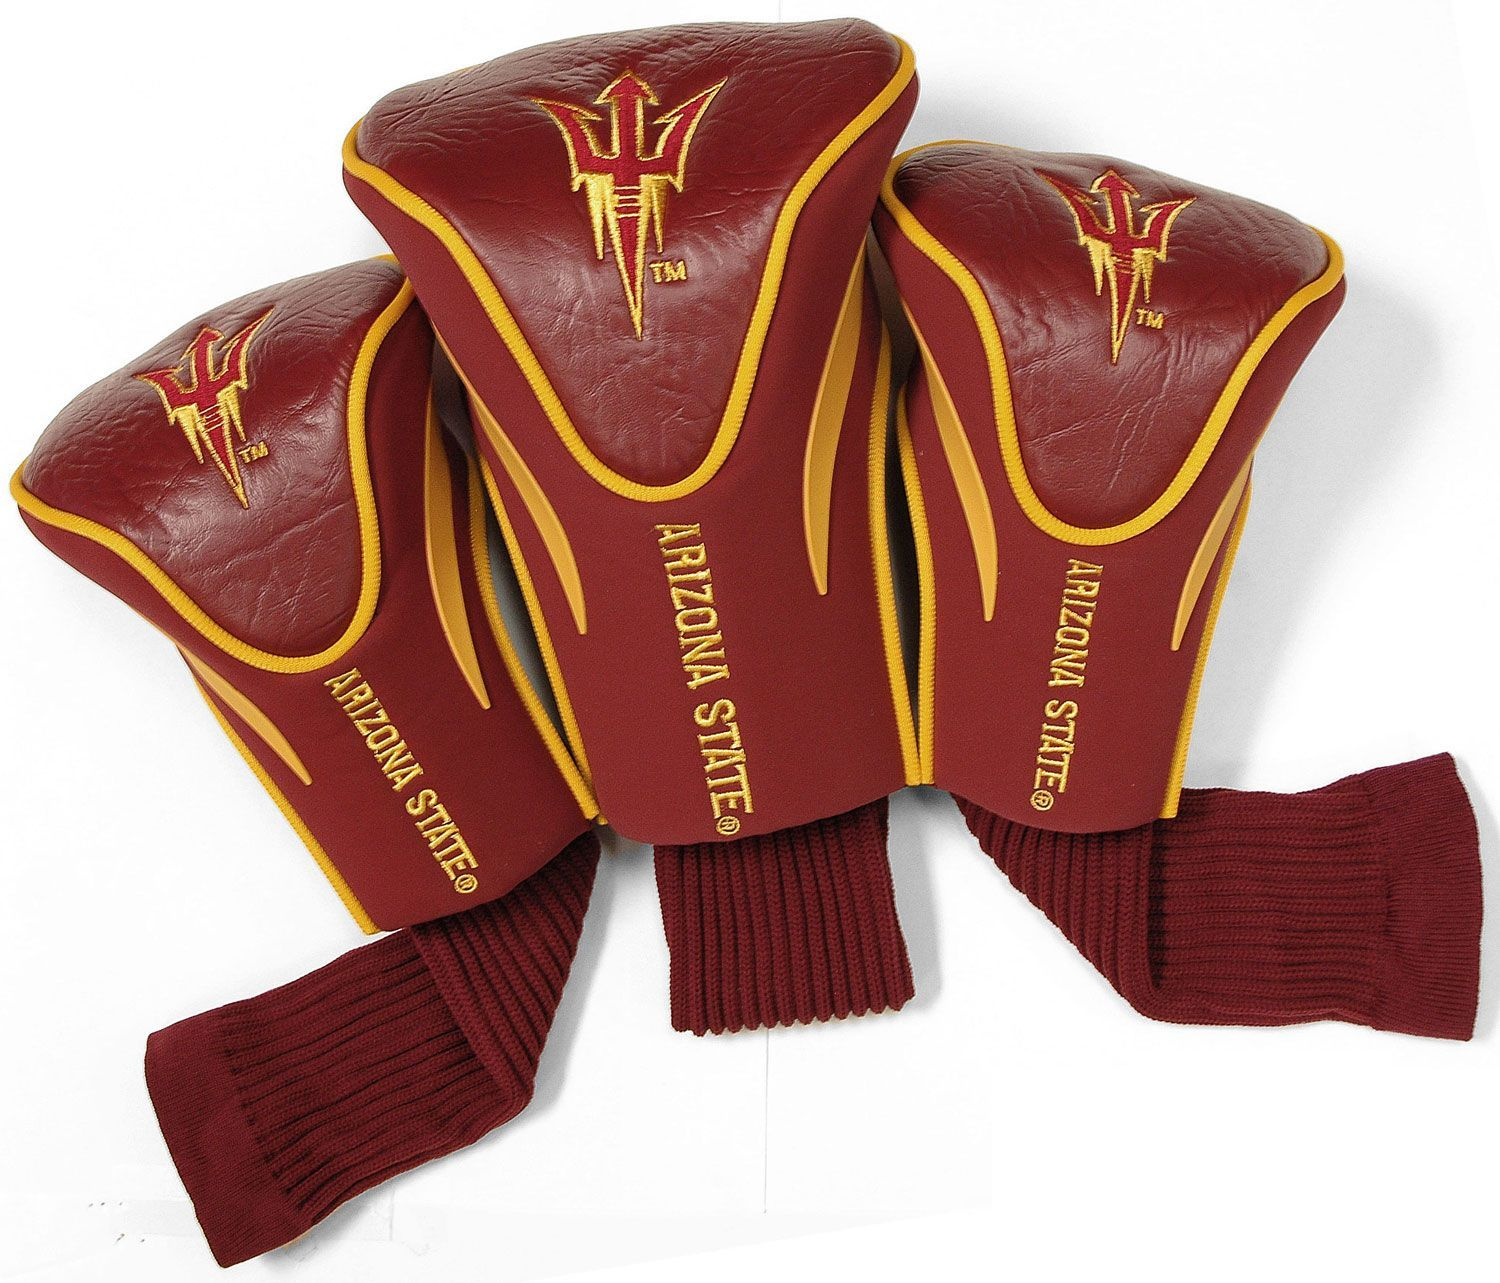 newest 13f2b 2100e Team Golf Arizona State Sun Devils Maroon (Red) Contour Headcovers - 3-Pack